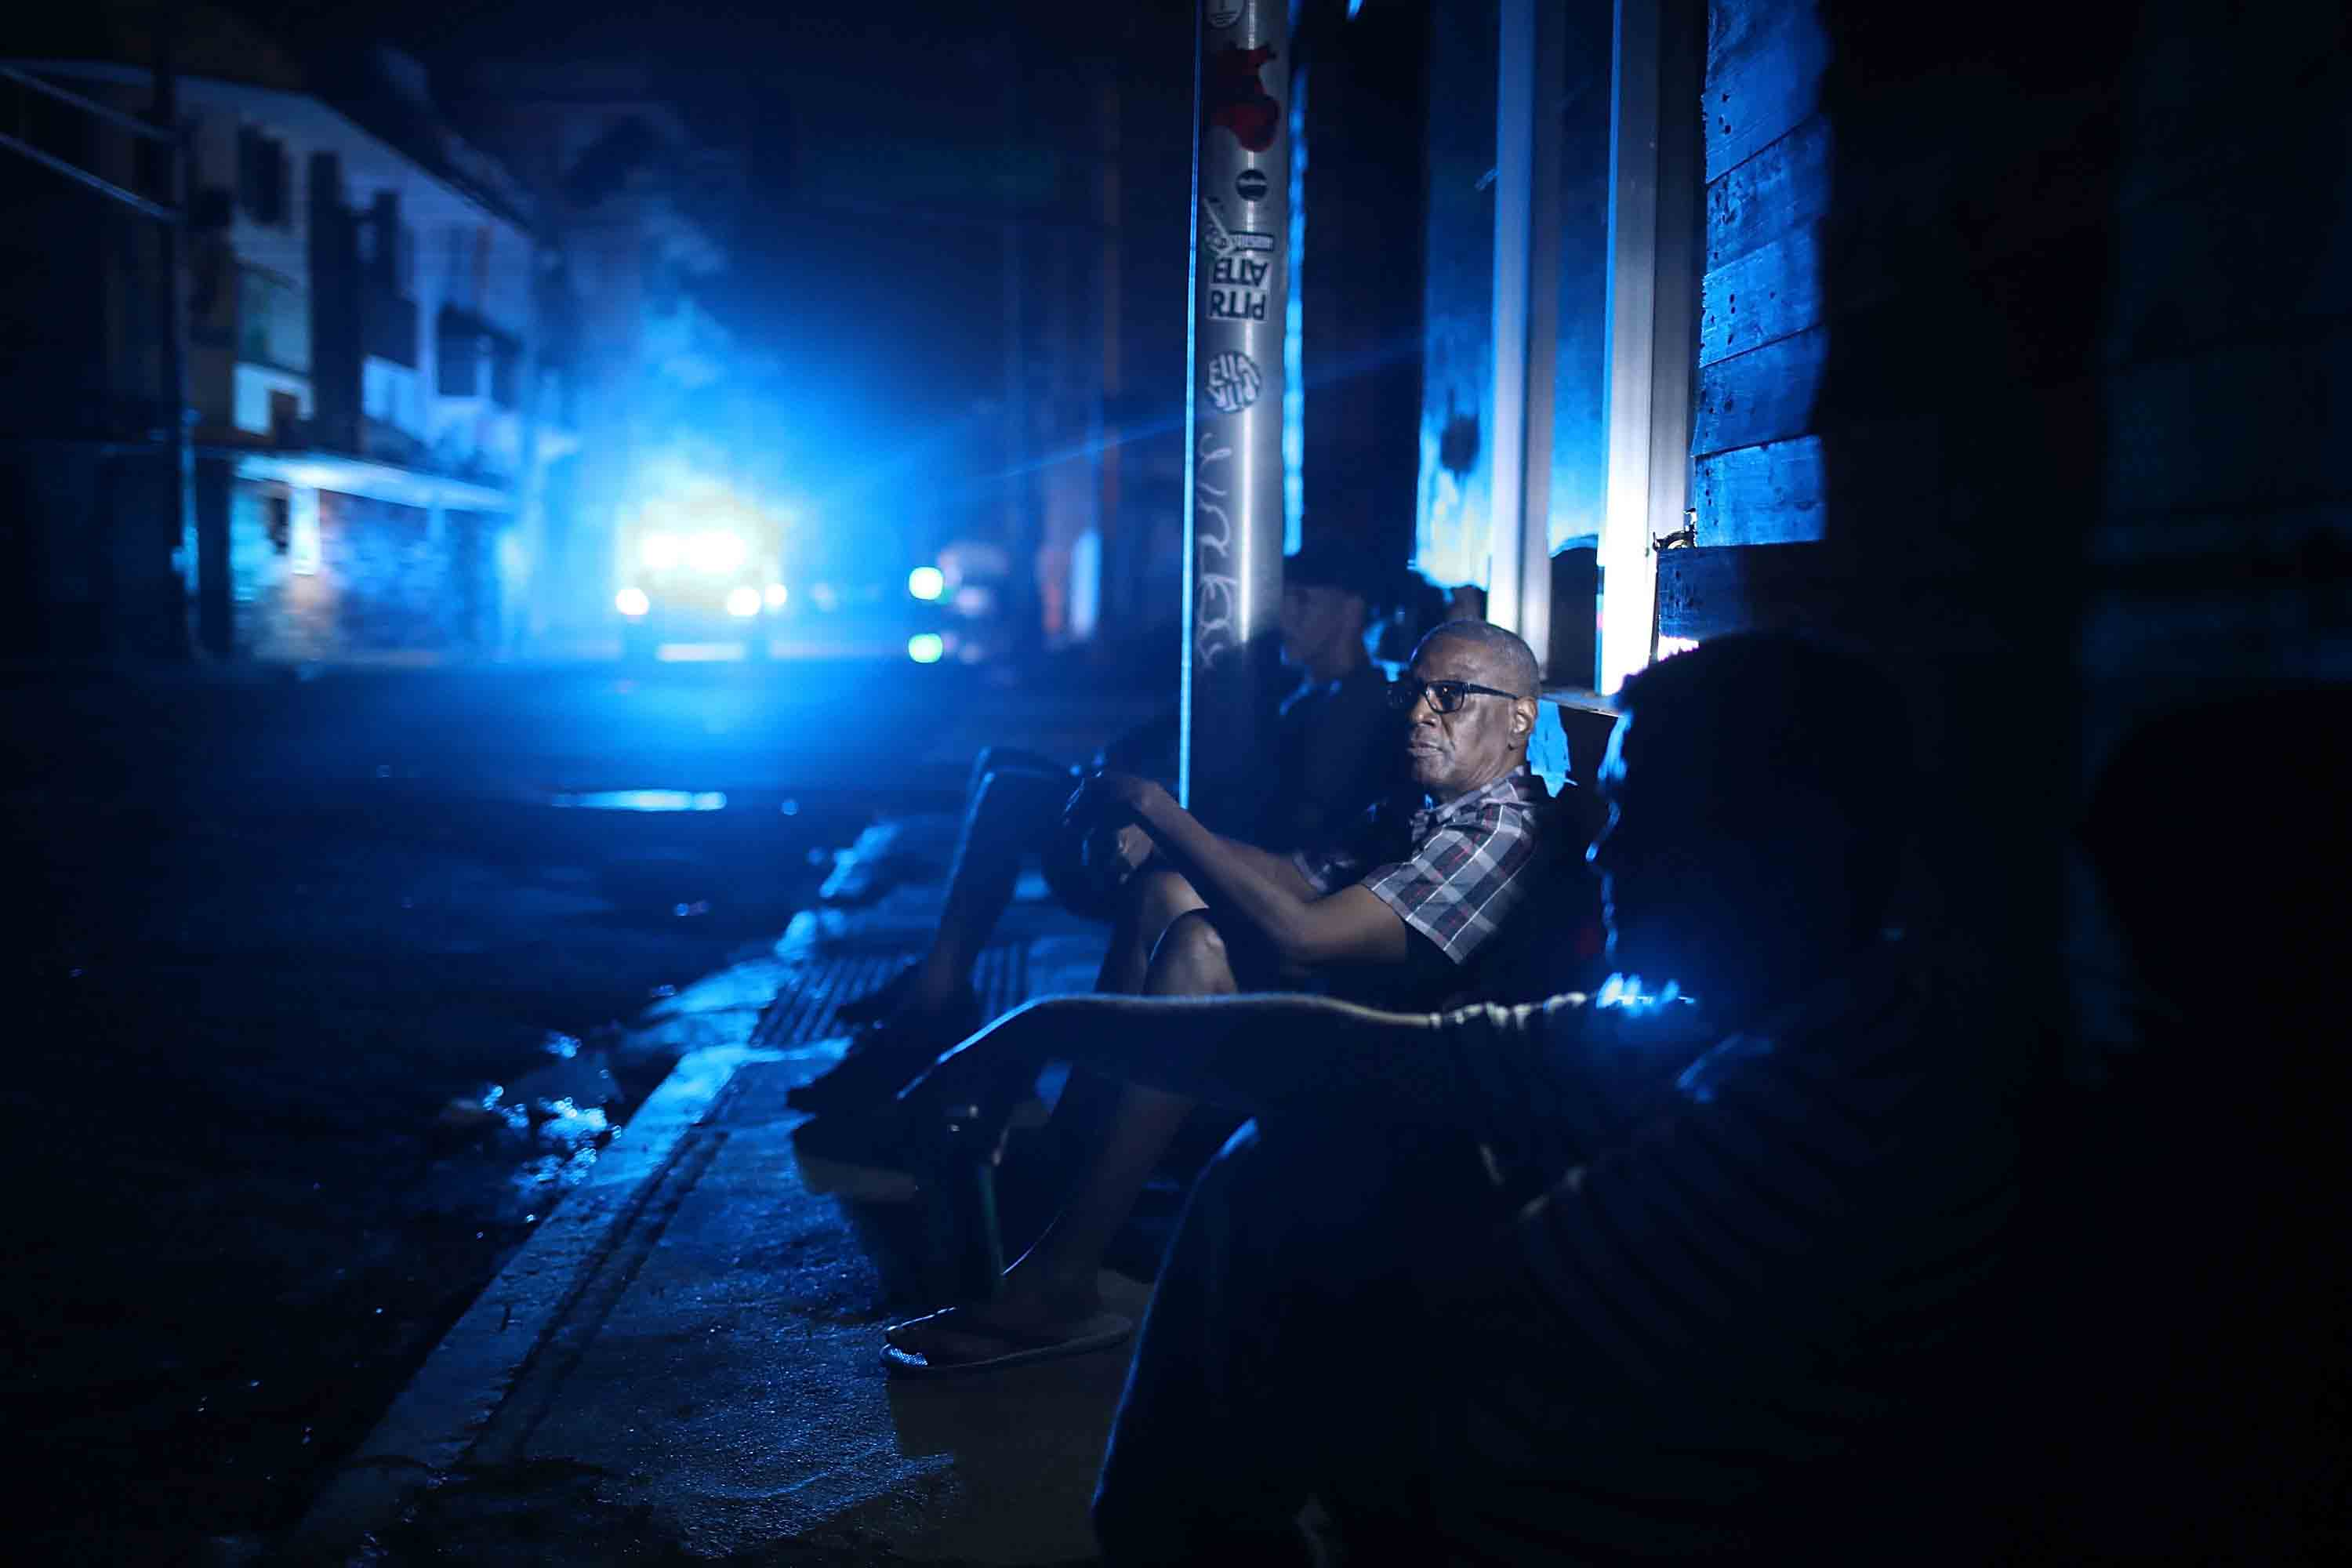 SAN JUAN, PUERTO RICO - SEPTEMBER 23: Jaime Degraff sits outside as he tries to stay cool as people wait for the damaged electrical grid to be fixed after Hurricane Maria.